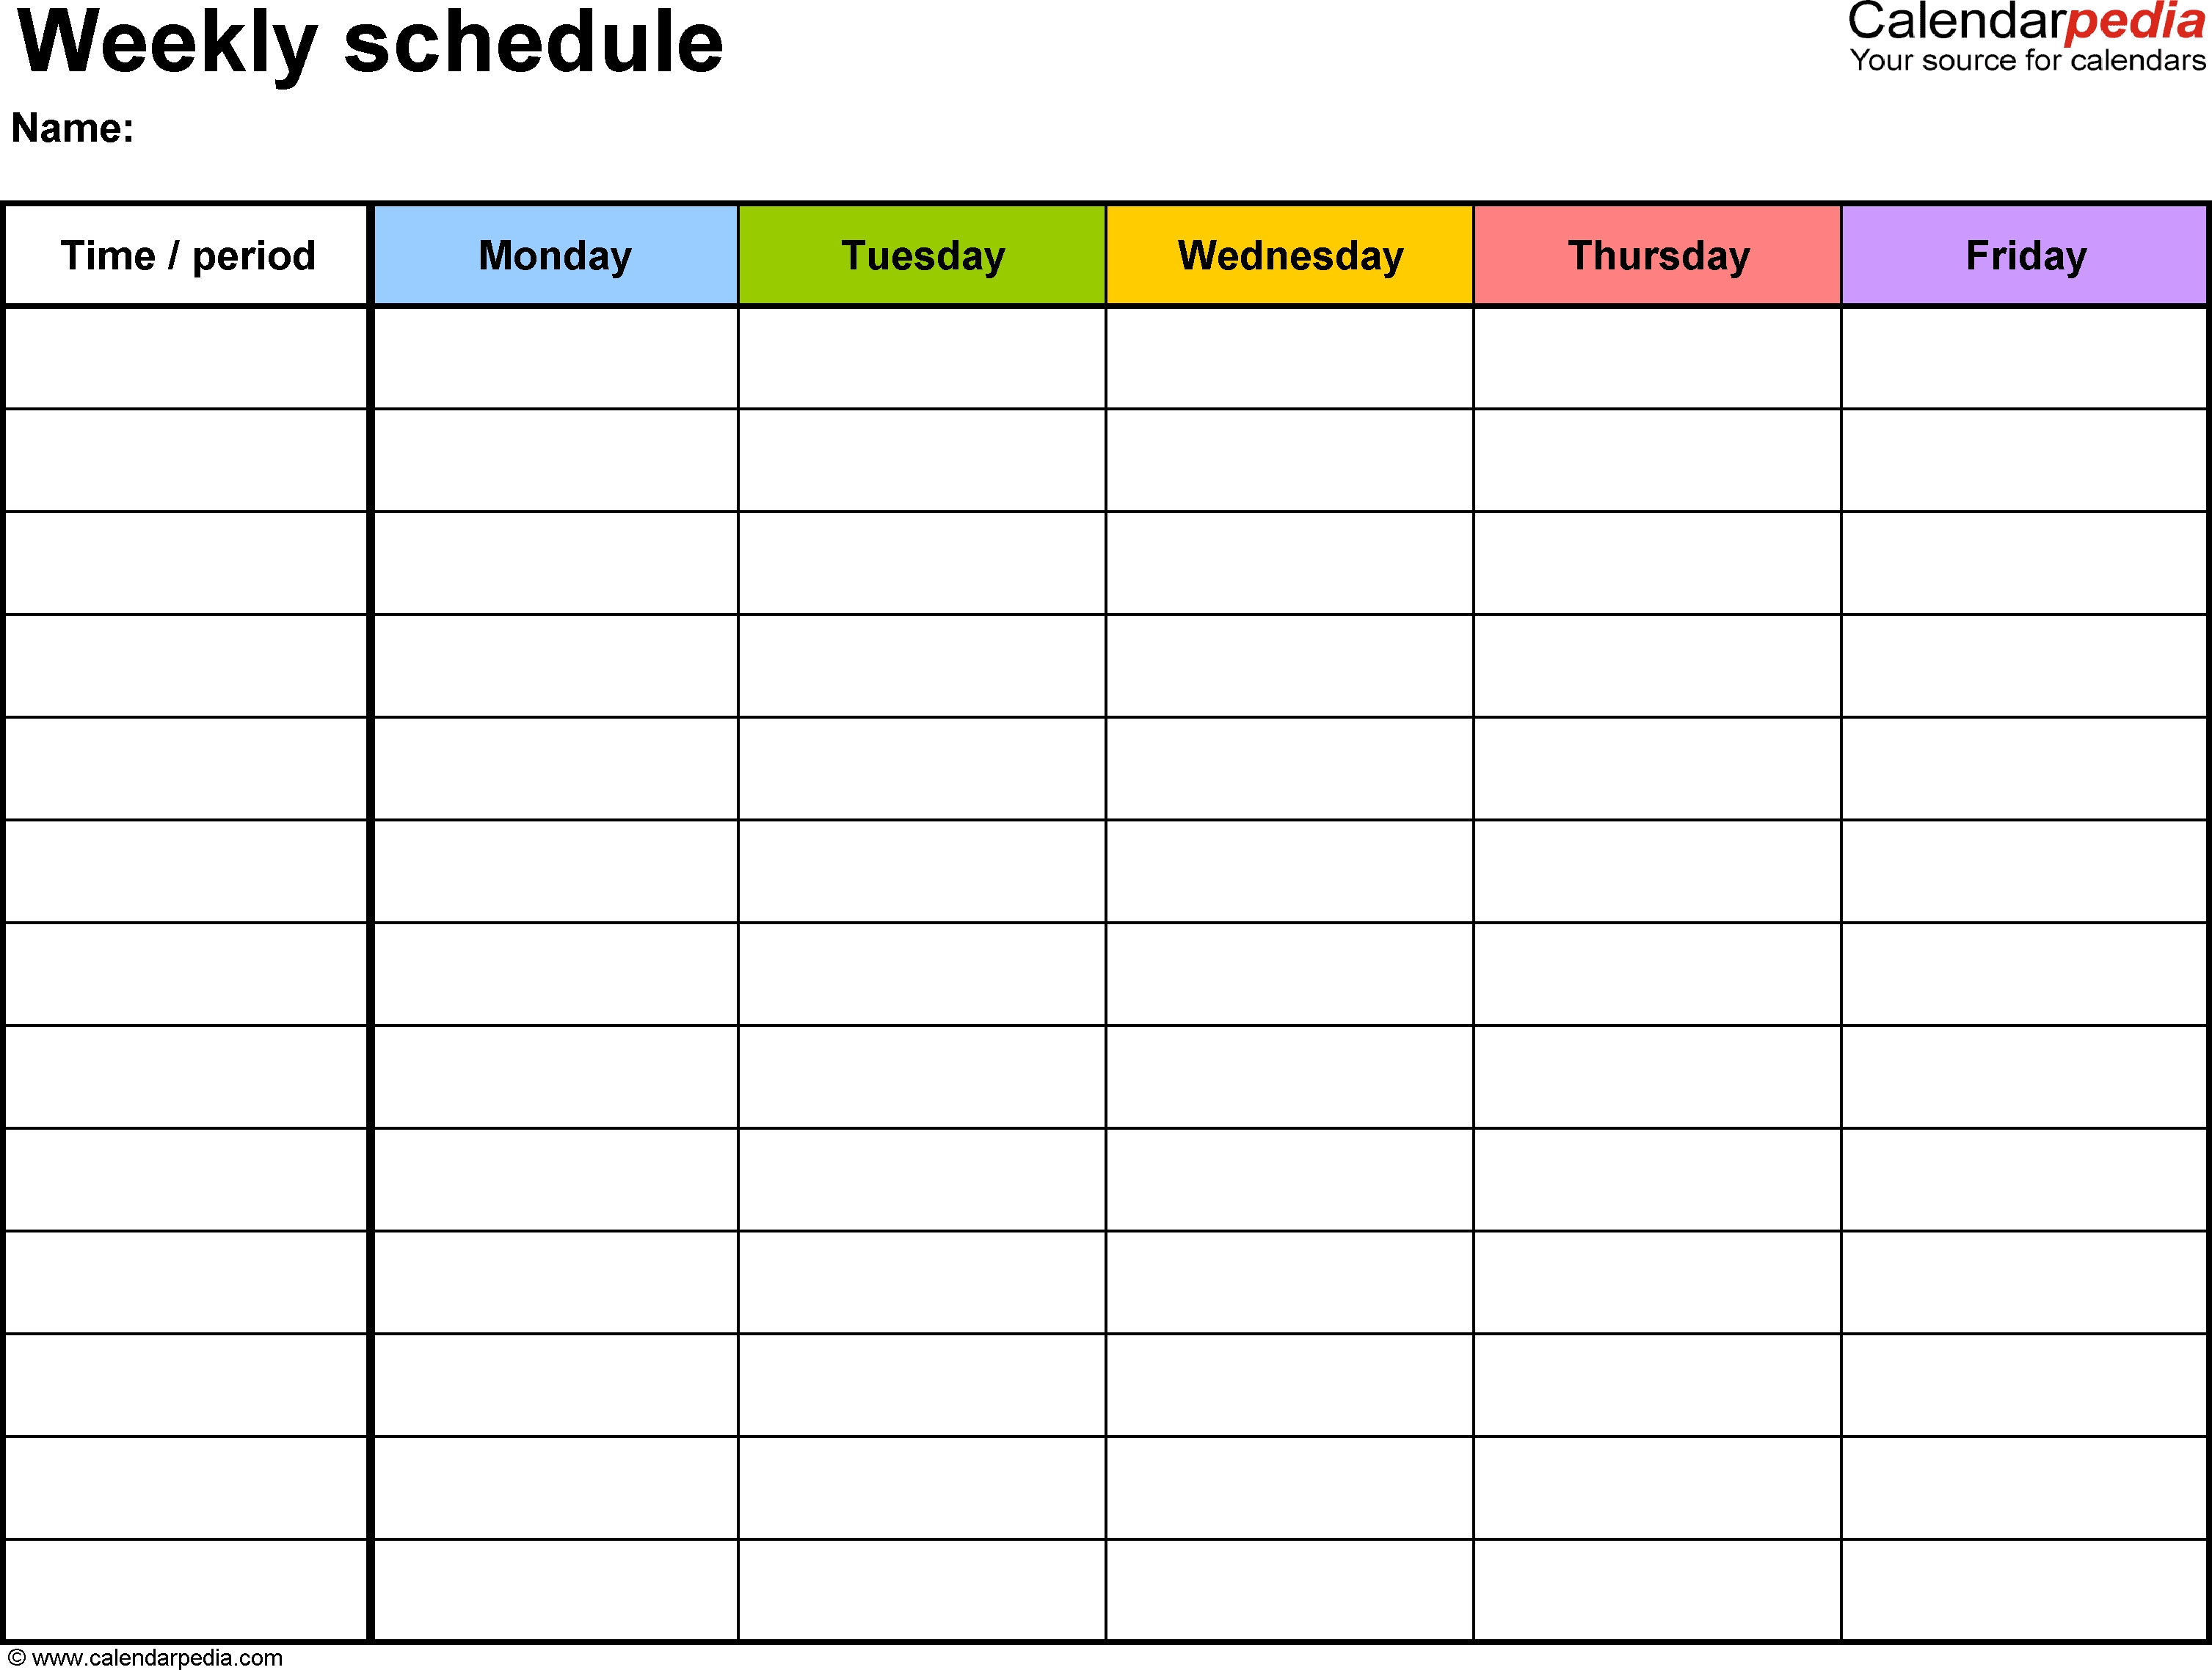 Free Weekly Schedule Templates For Word - 18 Templates throughout Printable Monday Through Friday Calendar